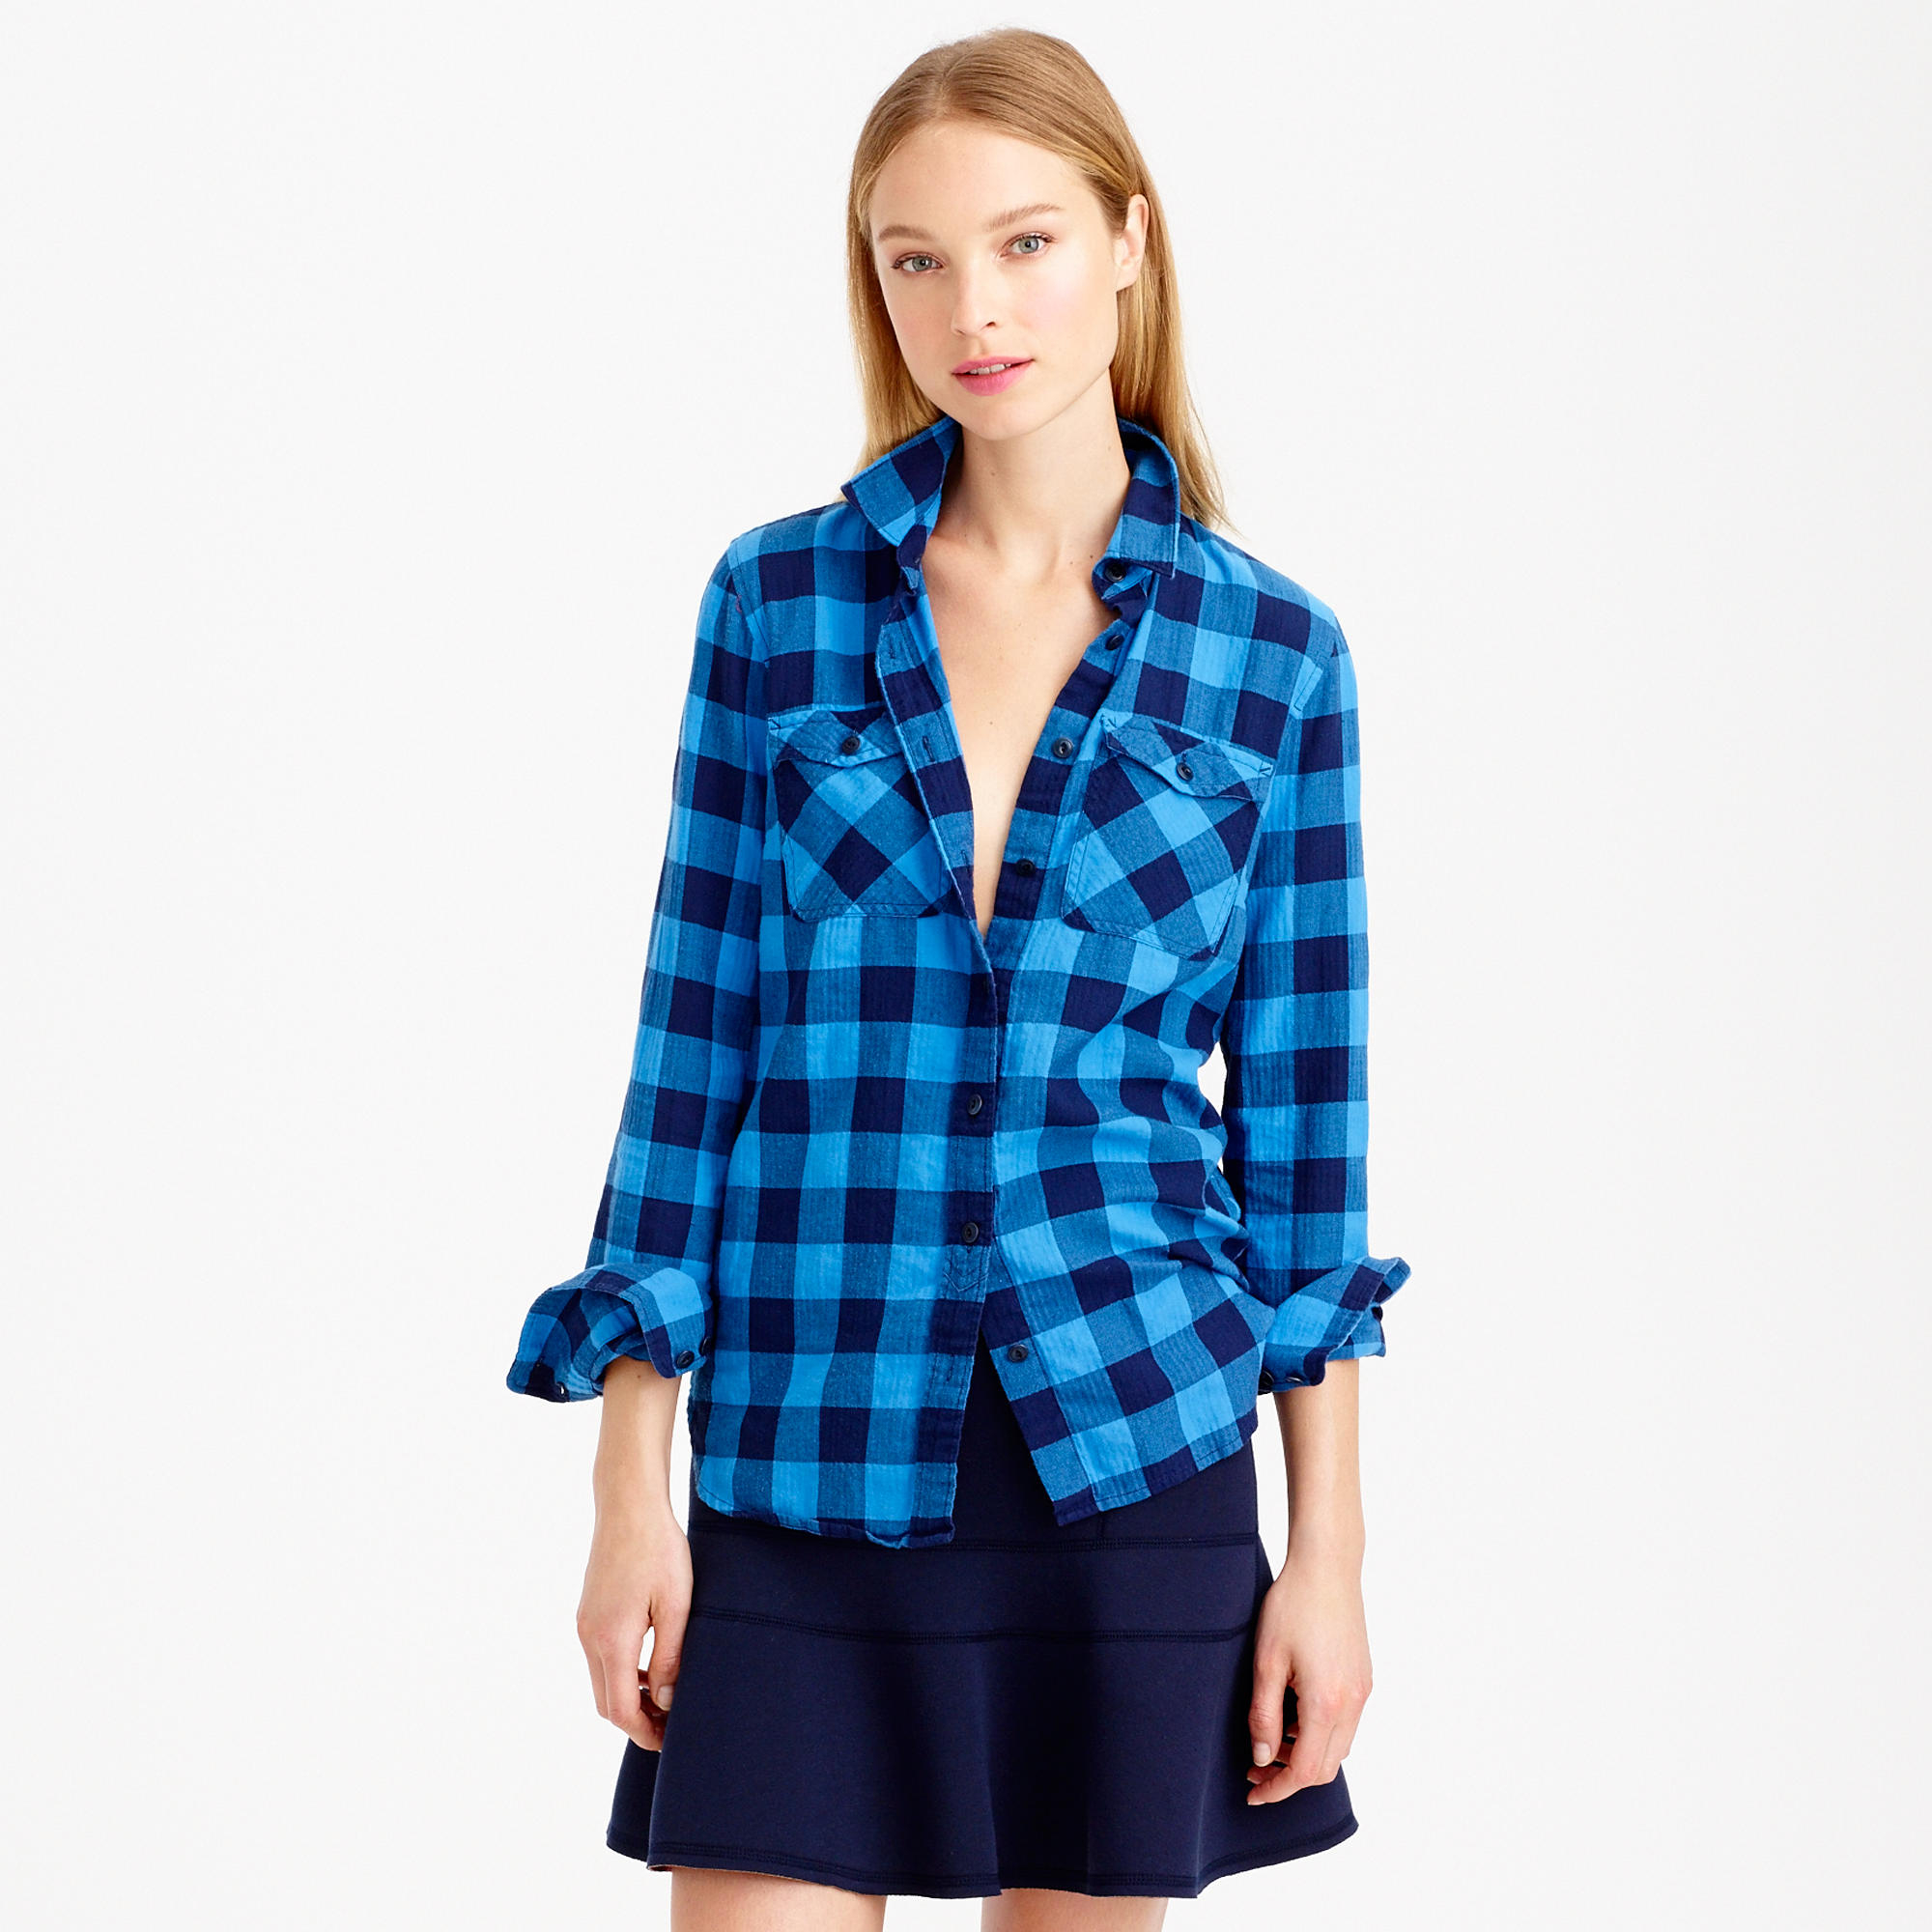 Lyst - J.Crew Flannel Shirt In Brilliant Sea Check in Blue d974a2b15